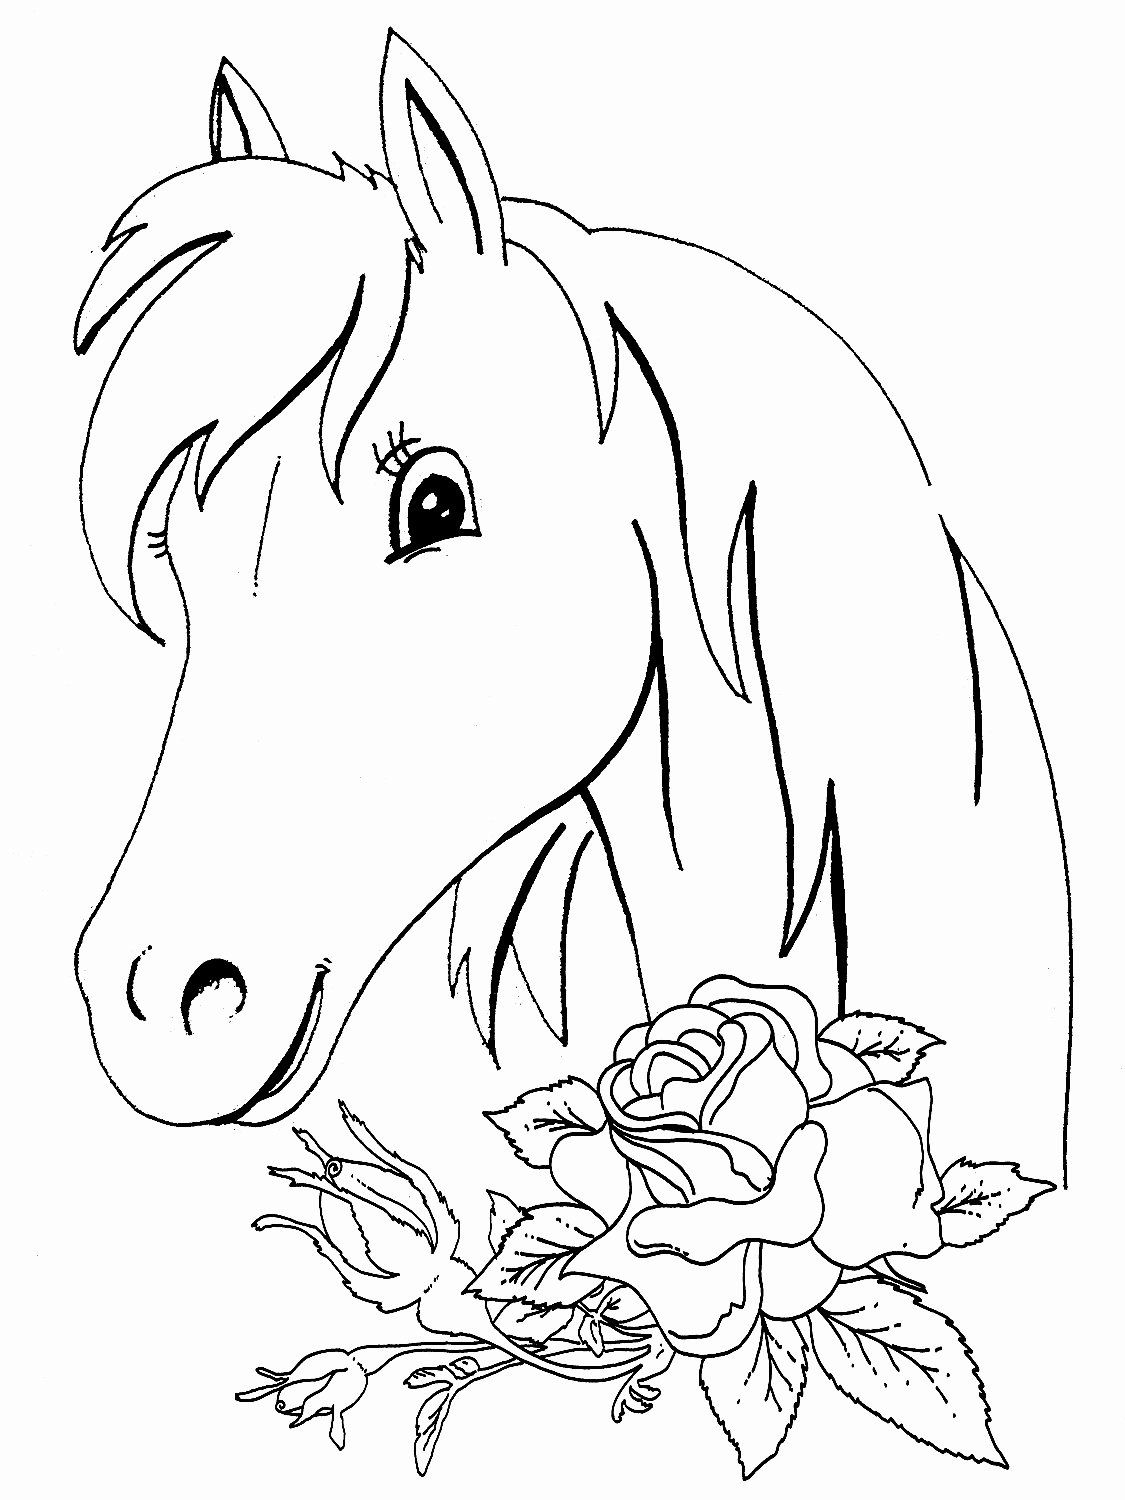 Carousel Horse Coloring Page In 2020 Horse Coloring Pages Horse